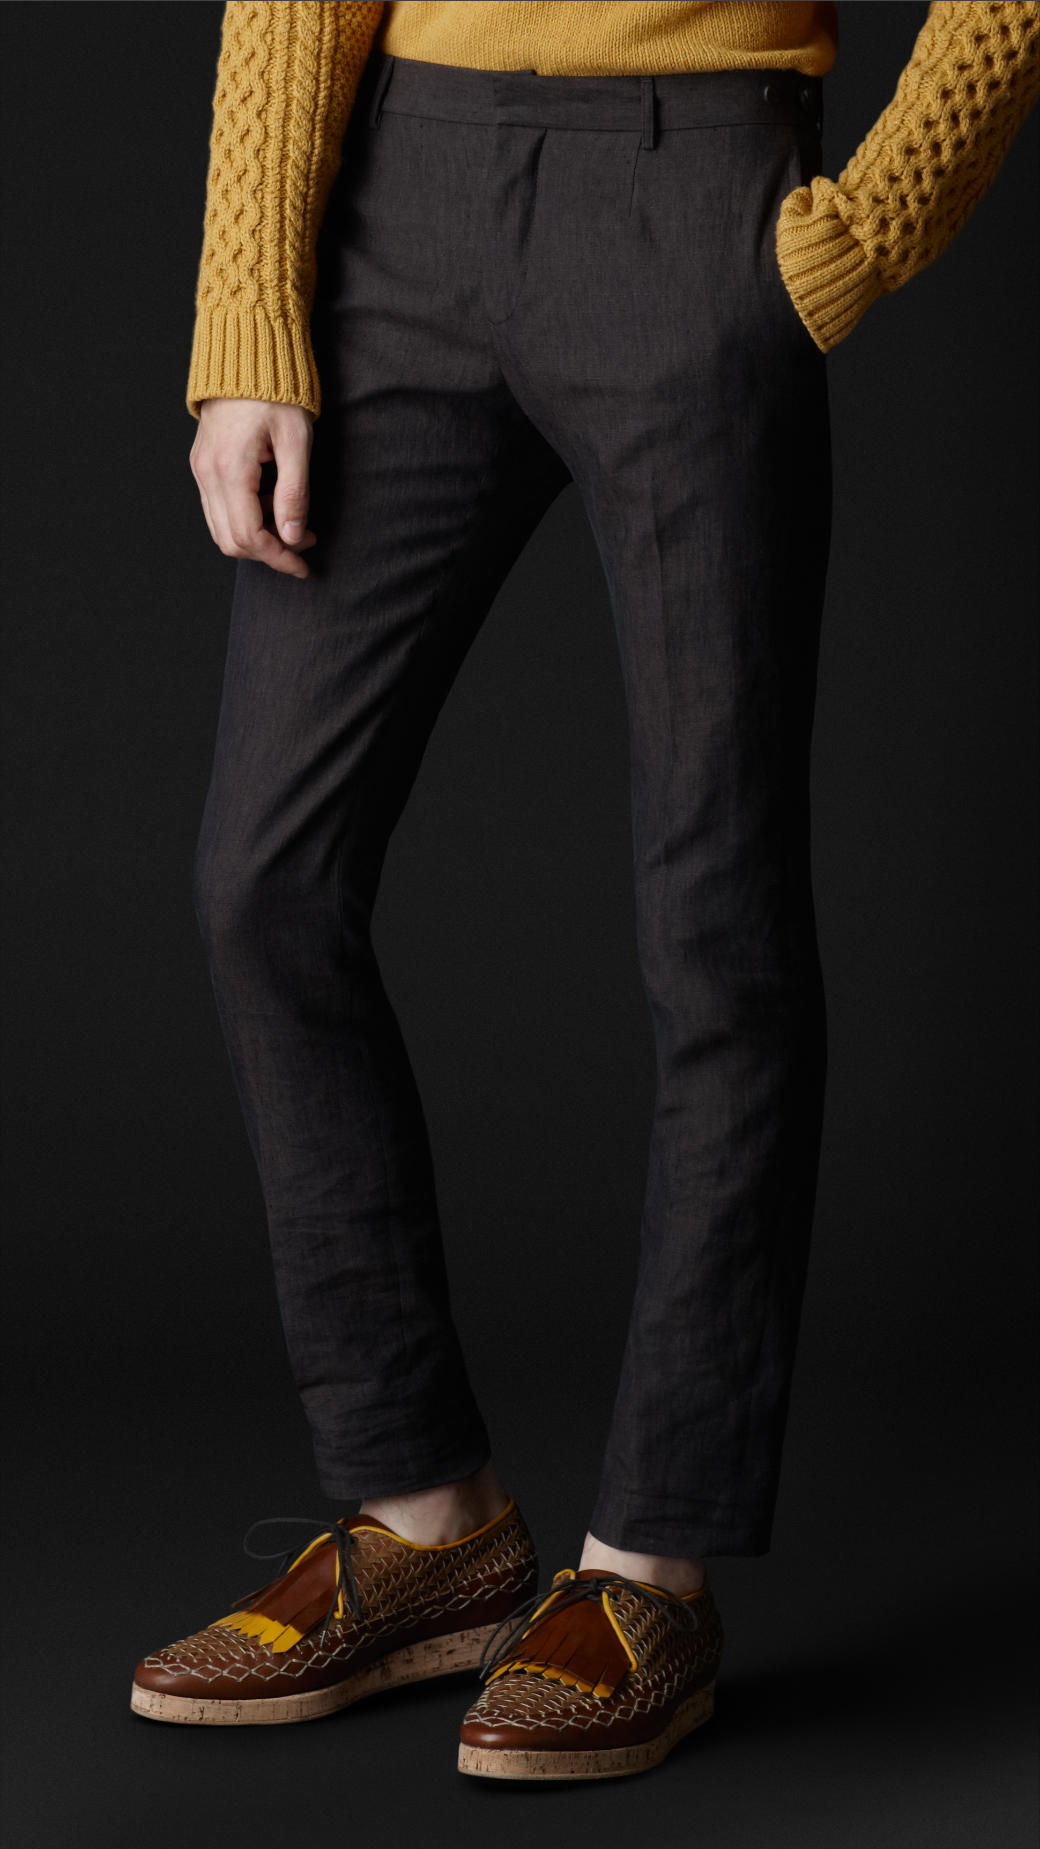 Burberry Prorsum Slim Fit Linen Trousers in Brown for Men